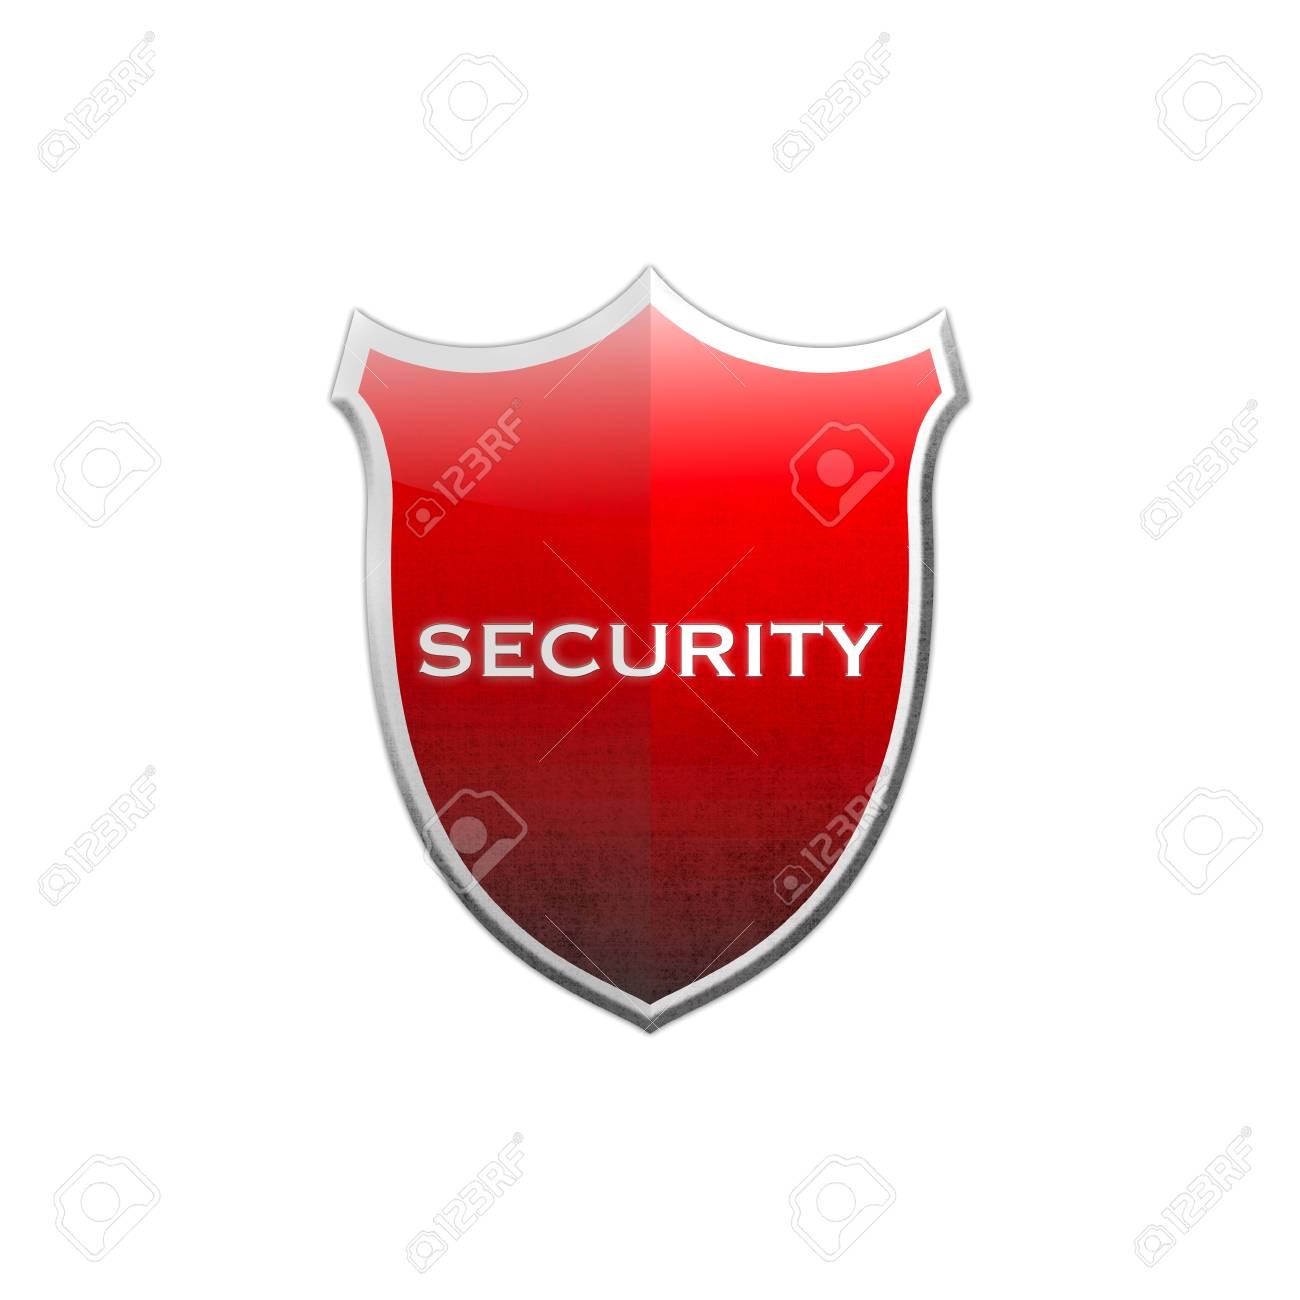 Illustration with security shield on white background Stock Illustration - 17031410